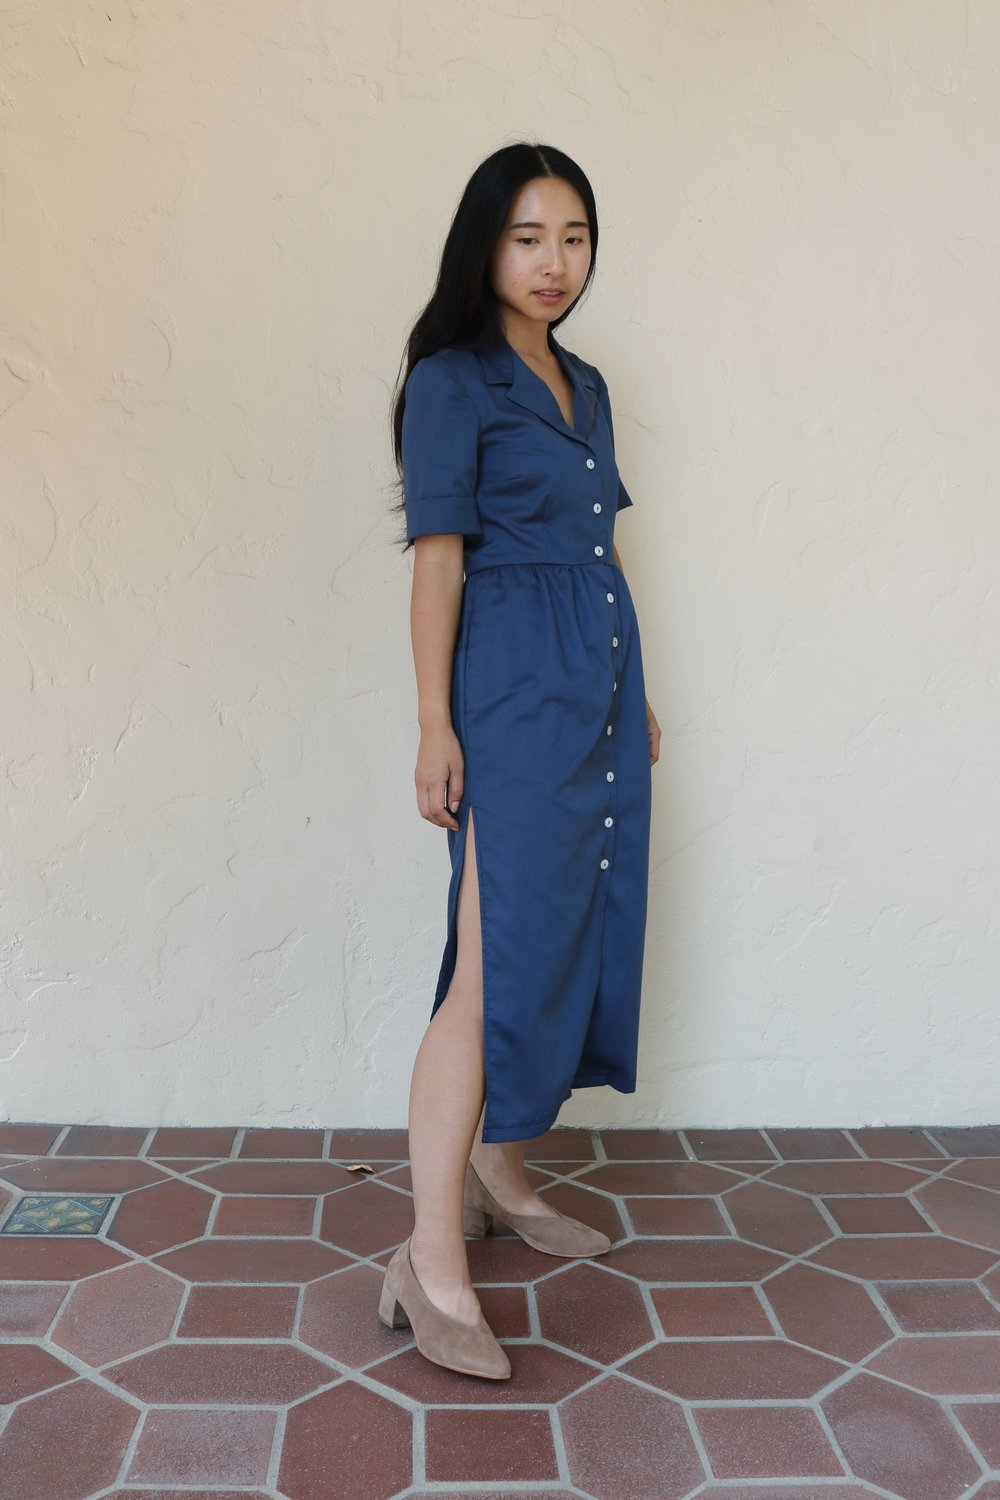 Sarina in L.A. wearing a dress of her own design with the Belu Pump